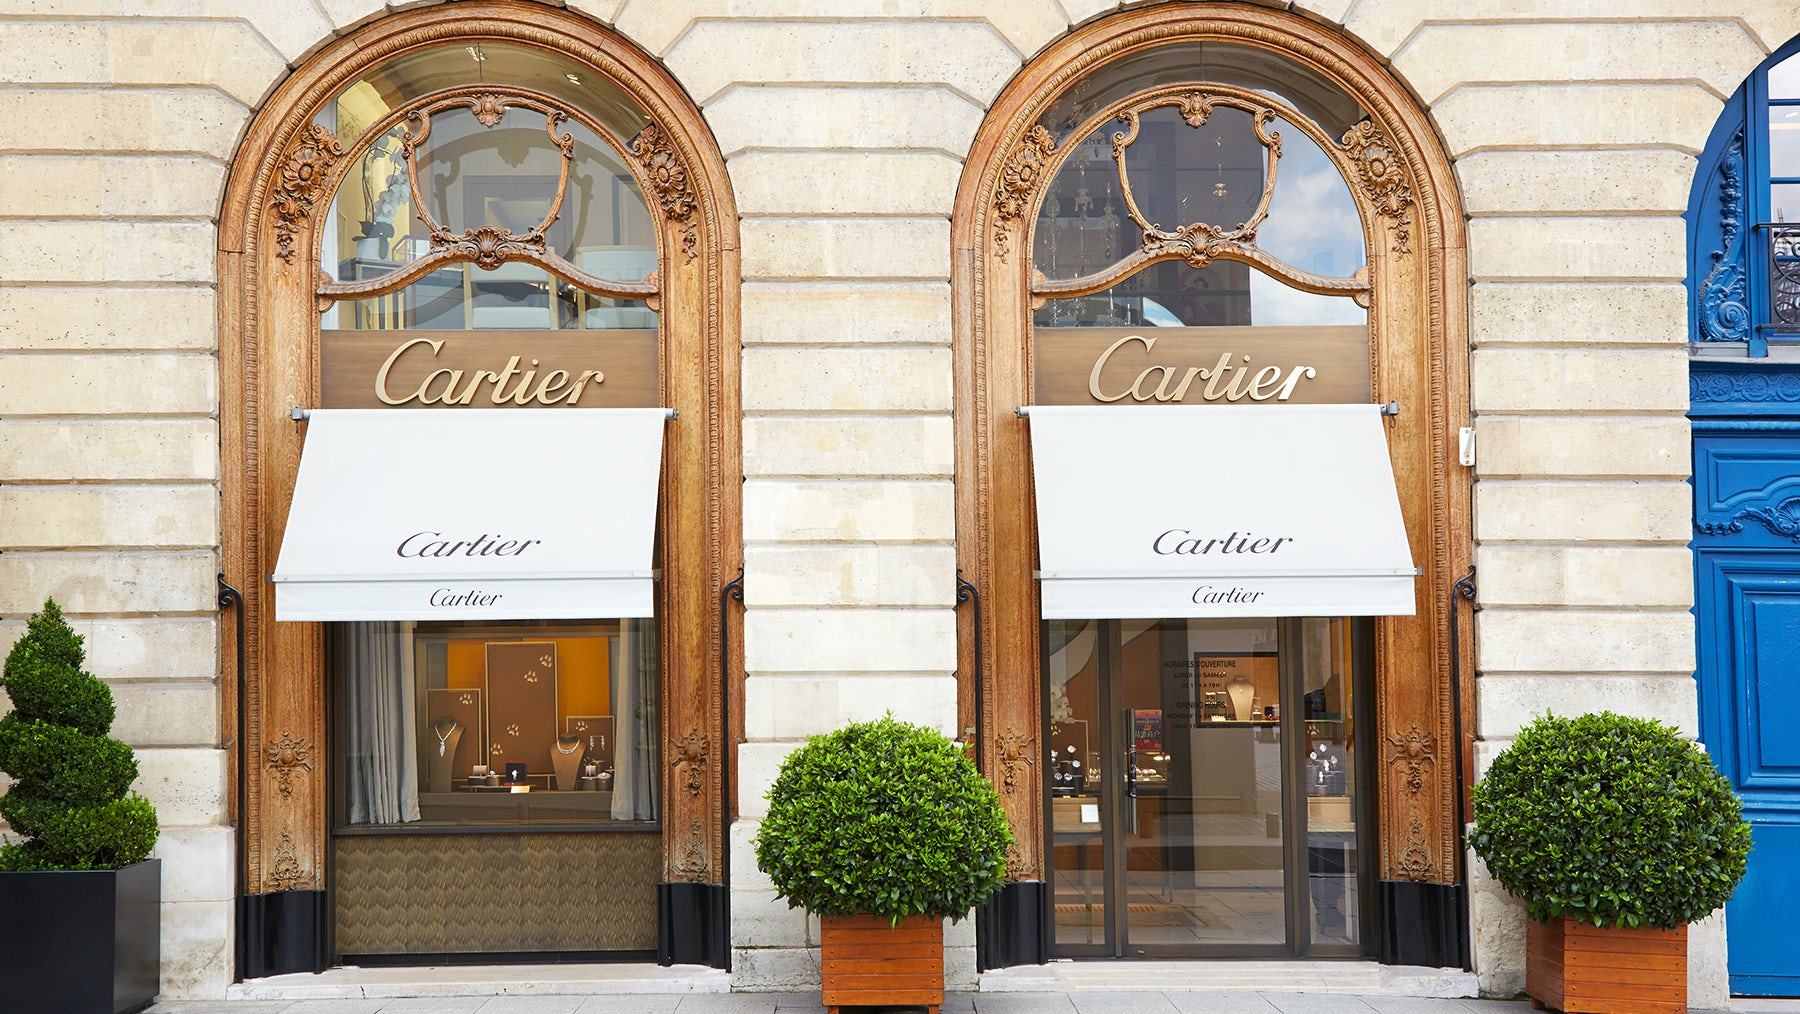 Richemont-owned Cartier store | Source: Shutterstock